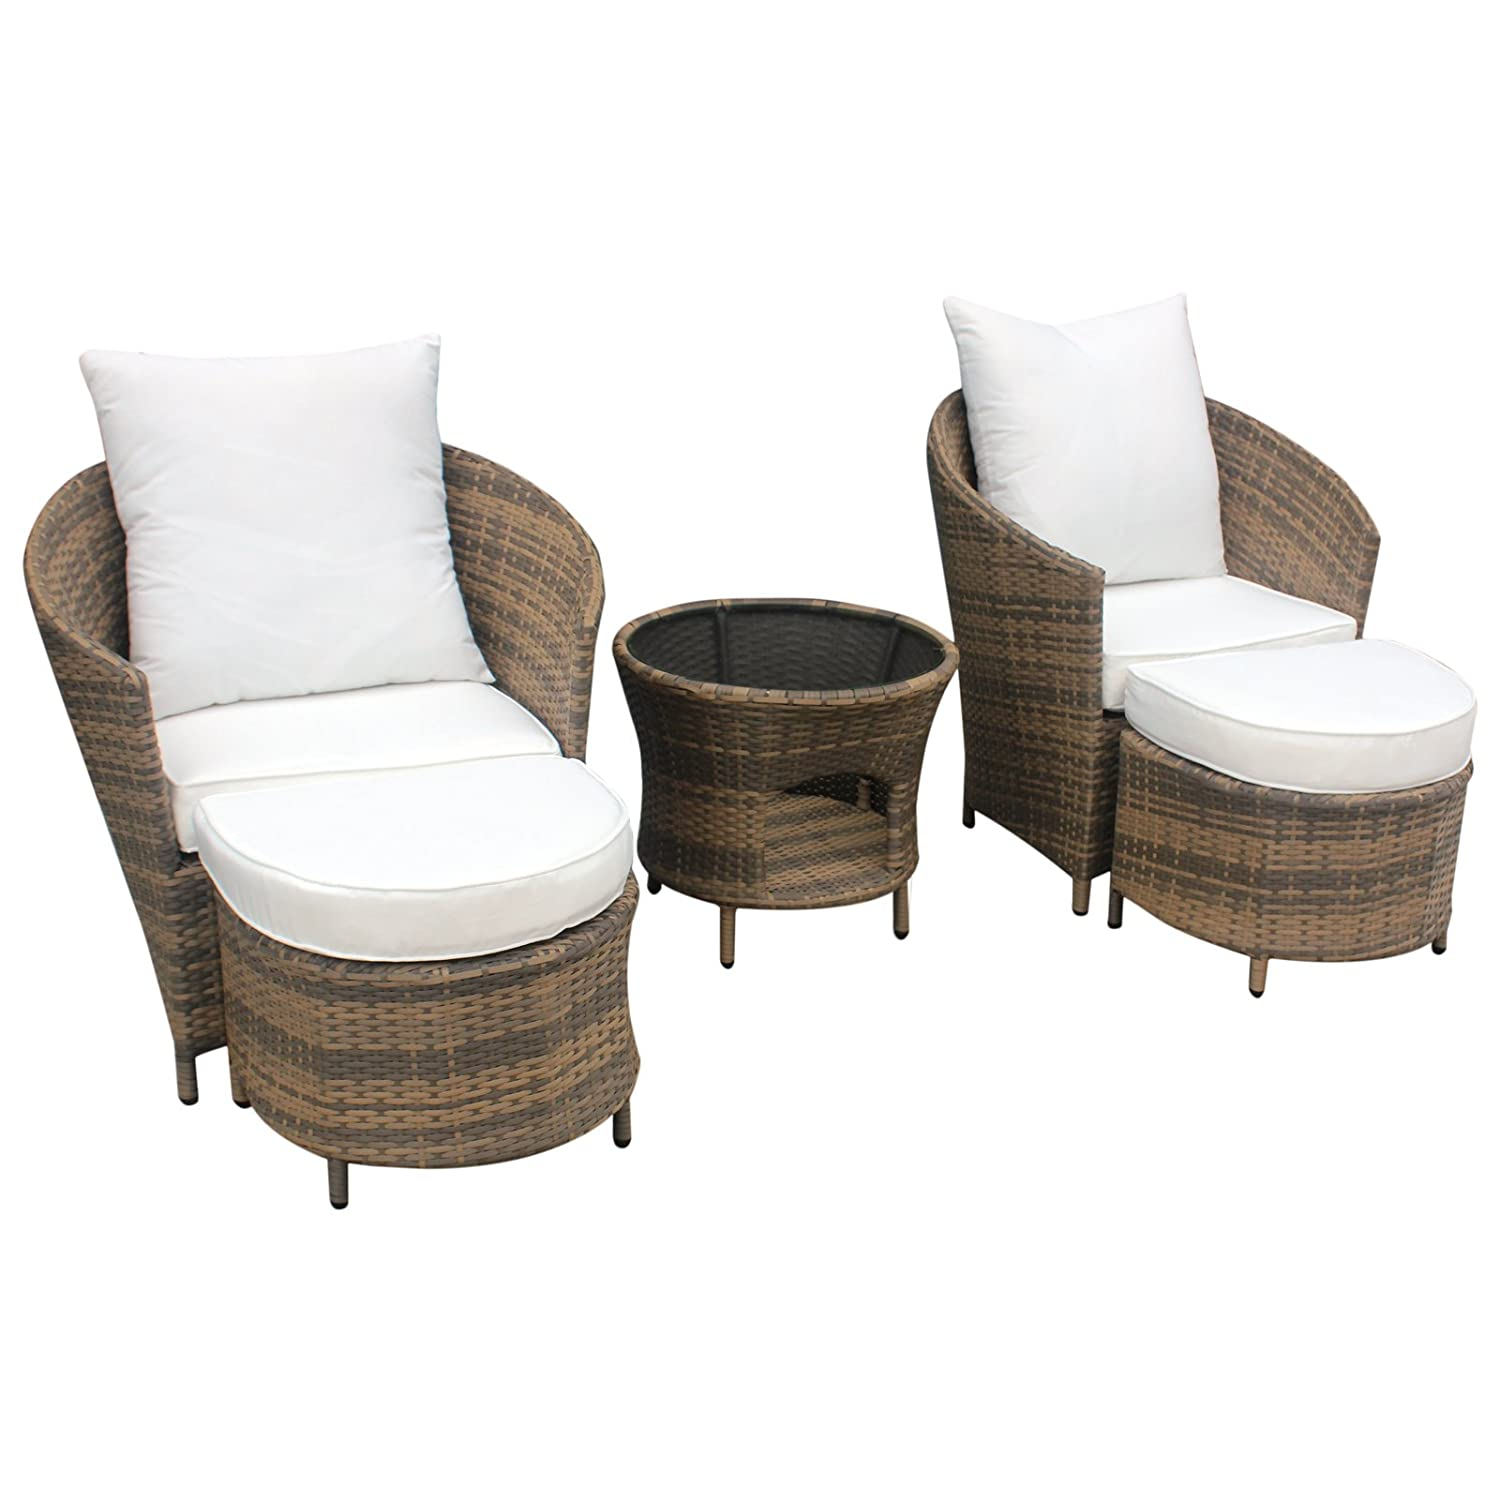 gartenm bel polyrattan lounge sitzgruppe garnitur 2 sessel mit hocker 1 x tisch kaffee wei. Black Bedroom Furniture Sets. Home Design Ideas